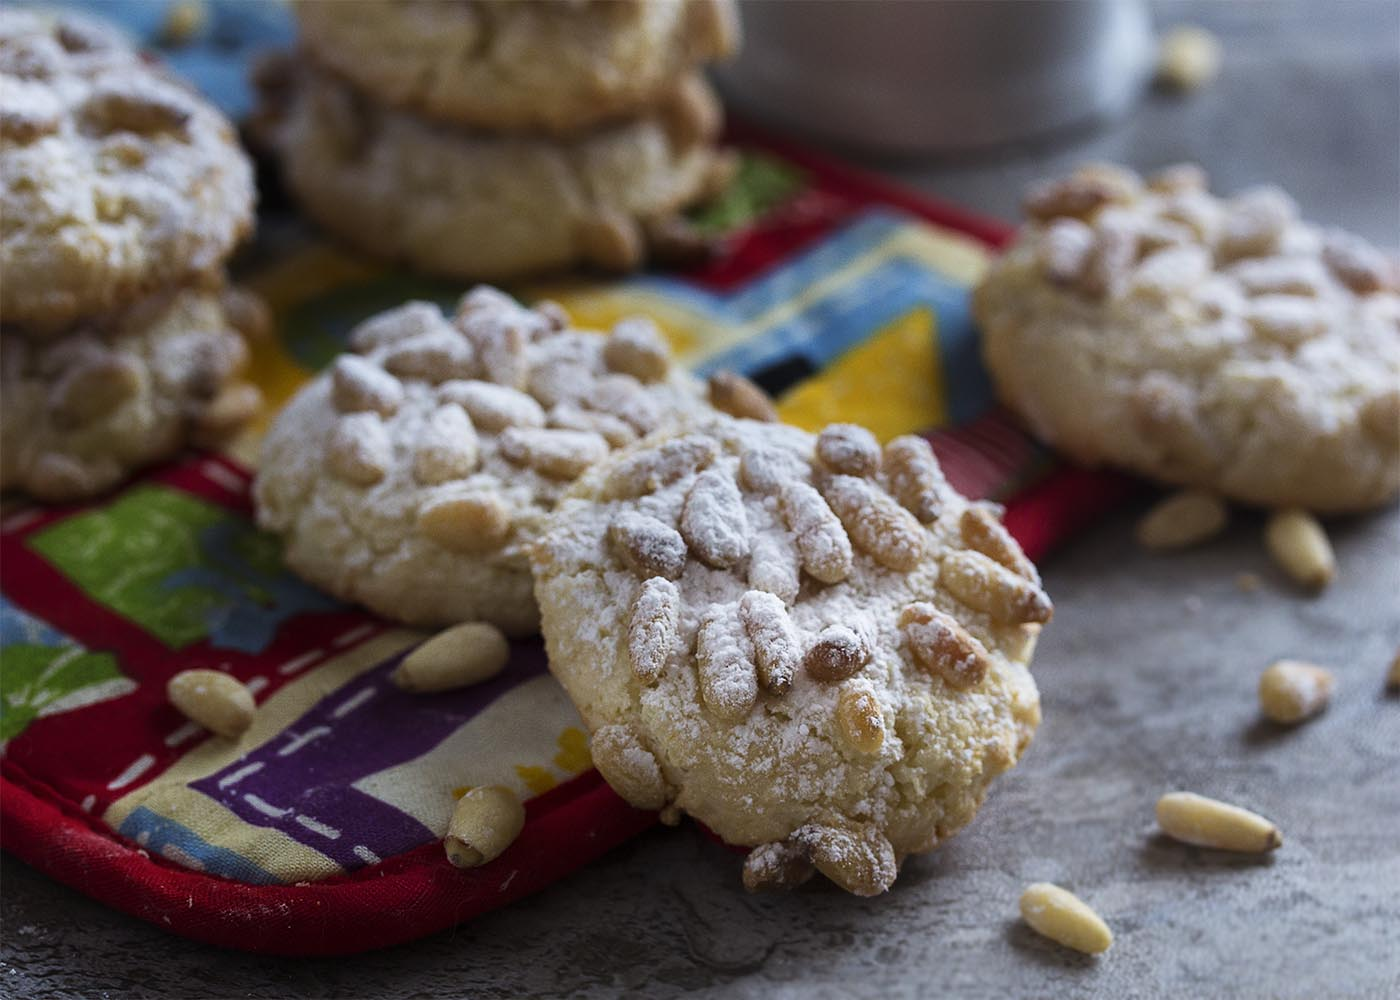 These gluten-free Italian pignoli cookies, adapted from Lidia Bastianich, are a great holiday cookie full of almonds and pine nuts! A great addition to a Christmas cookie tray. | justalittlebitofbacon.com